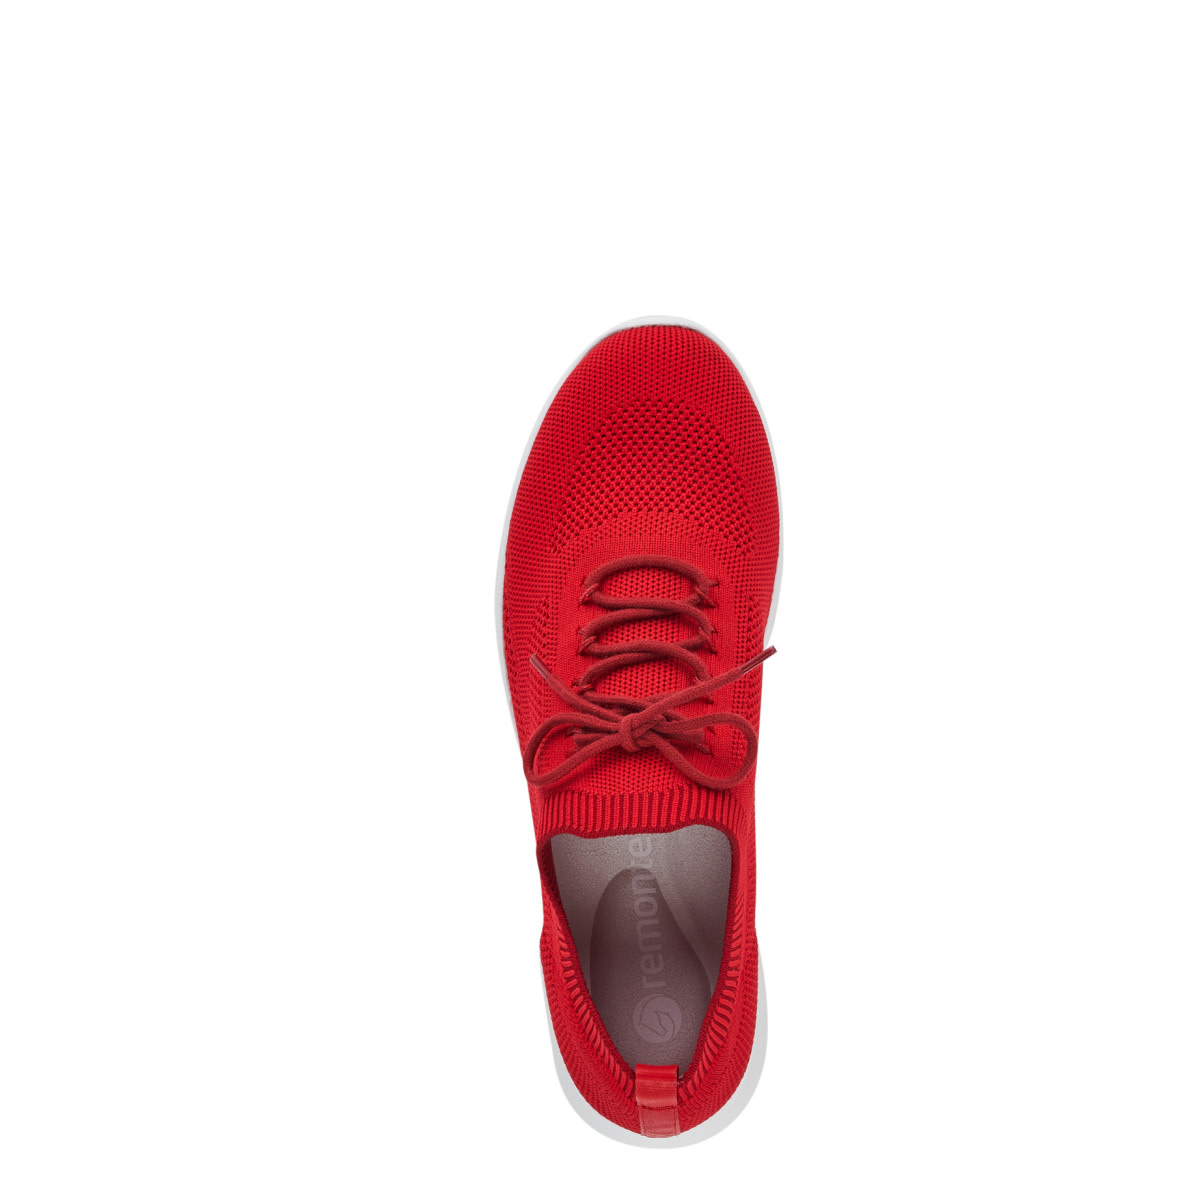 Remonte Remonte R7103-33 Sneaker Red